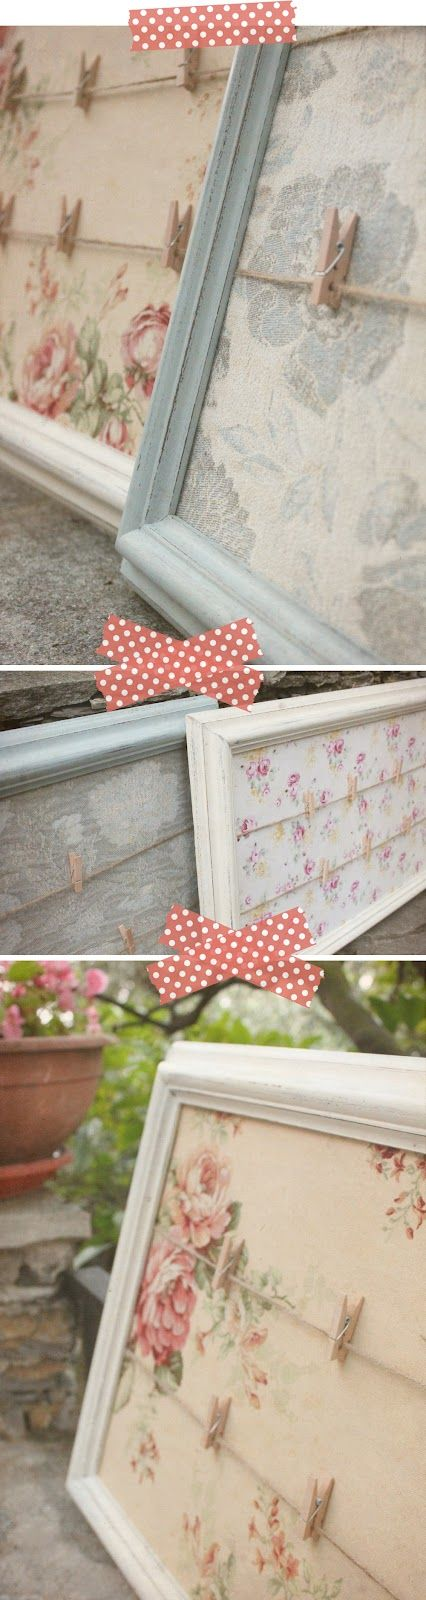 This would be a fun and cute display board to swap out pictures.  Easy to make.